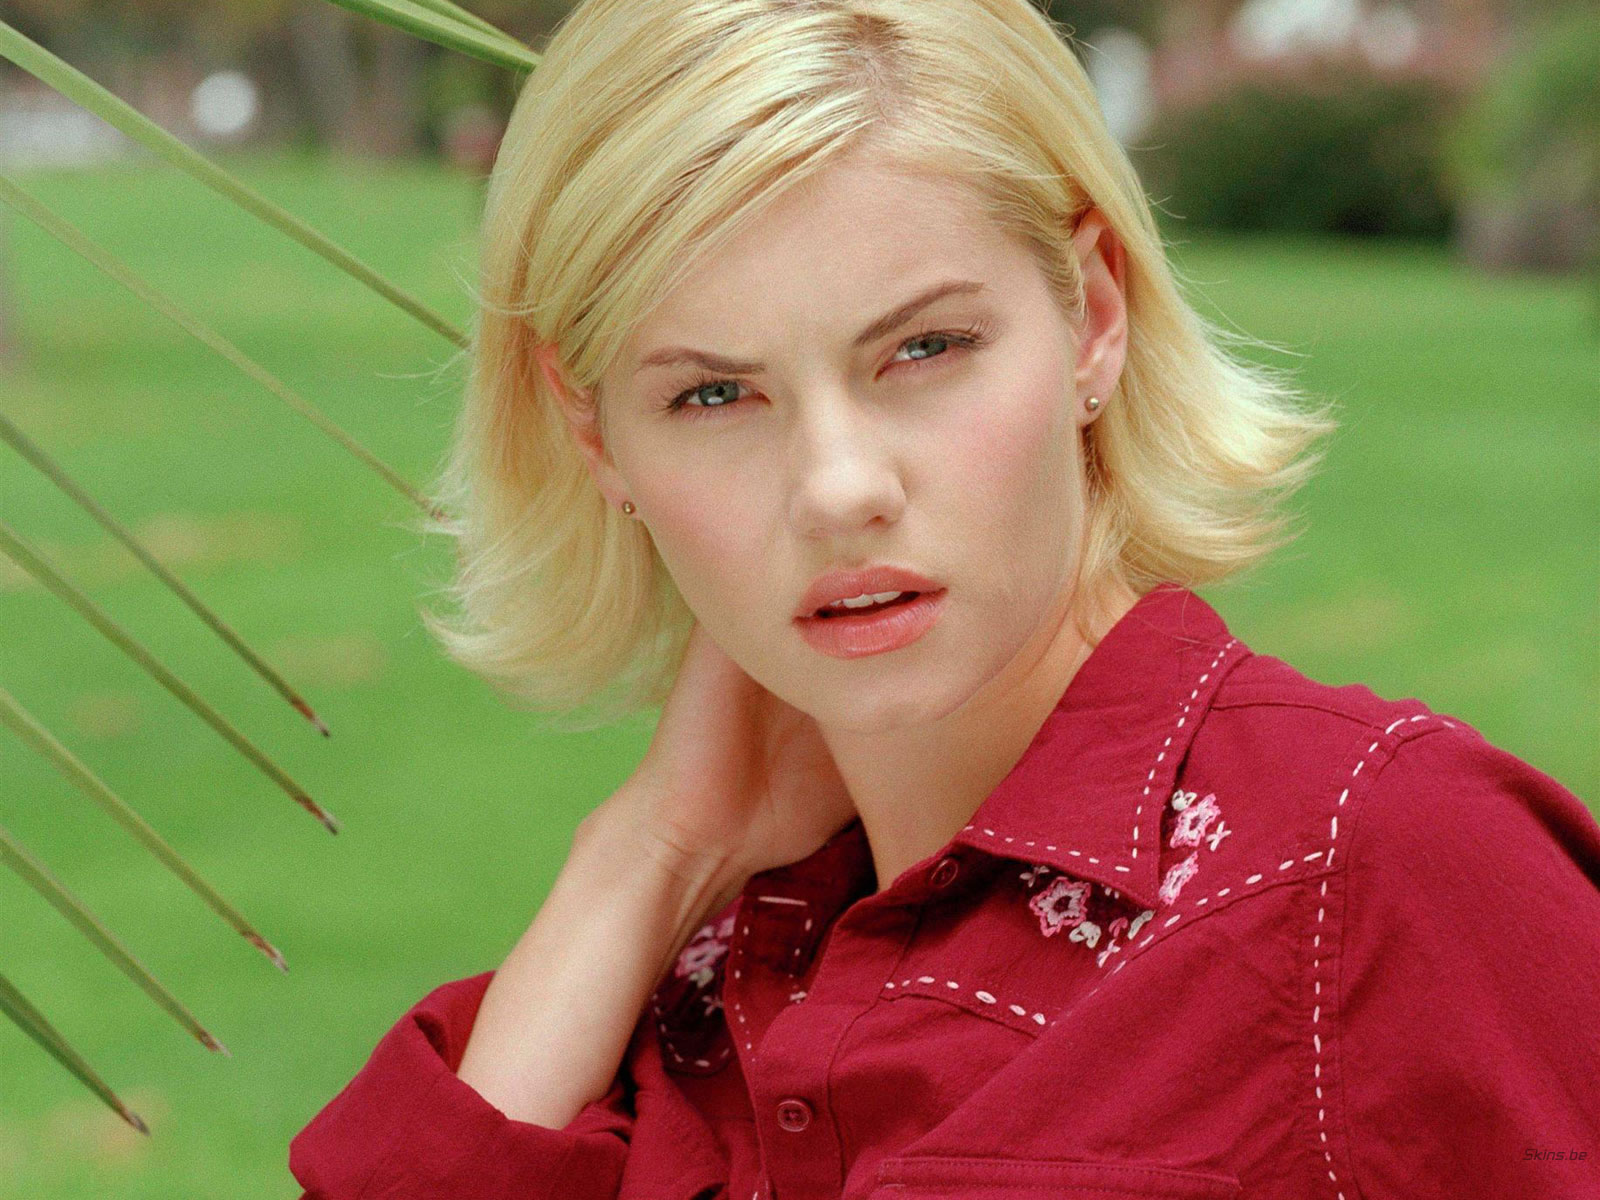 Charming Elisha Cuthbert Desktop Pictures Download